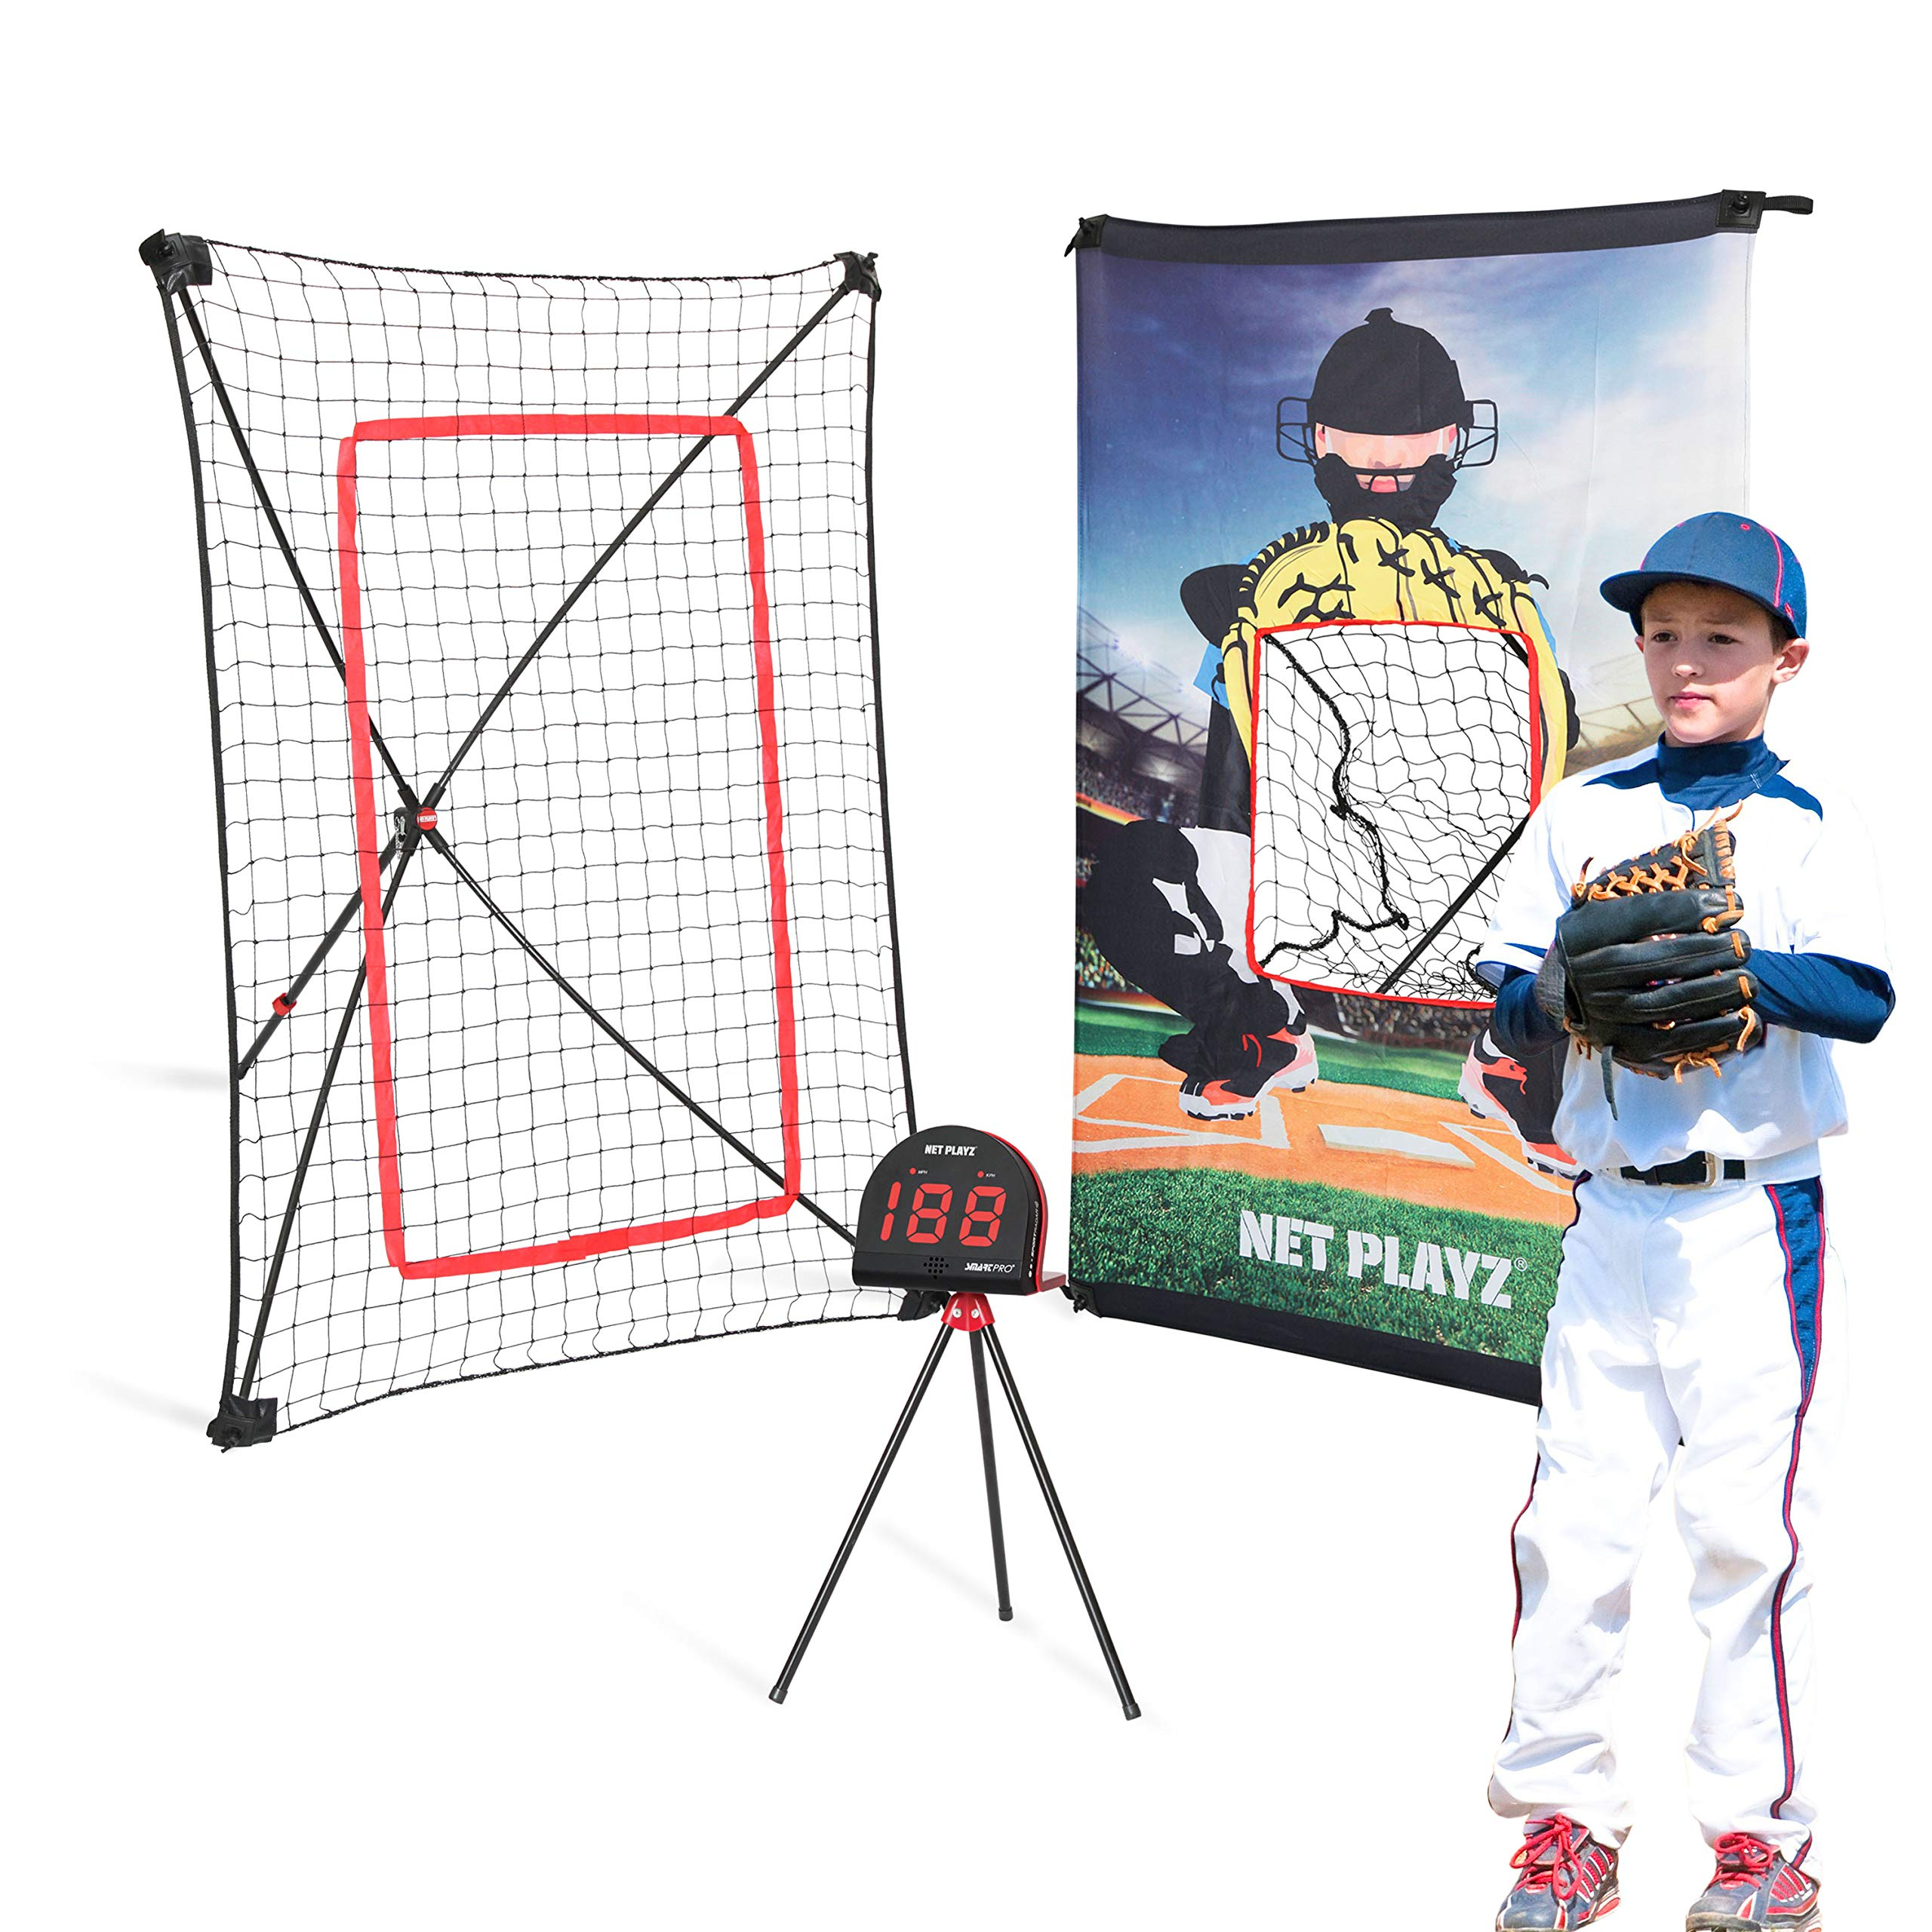 Net Playz Smart Baseball Trainer Combo with 1 set Sport Radar, 3-Feet by 5-Feet Pitchback Rebounder Net and Pitching Target Panel with Carry Bag /1 Pc Baseball and Softball Included by NET PLAYZ